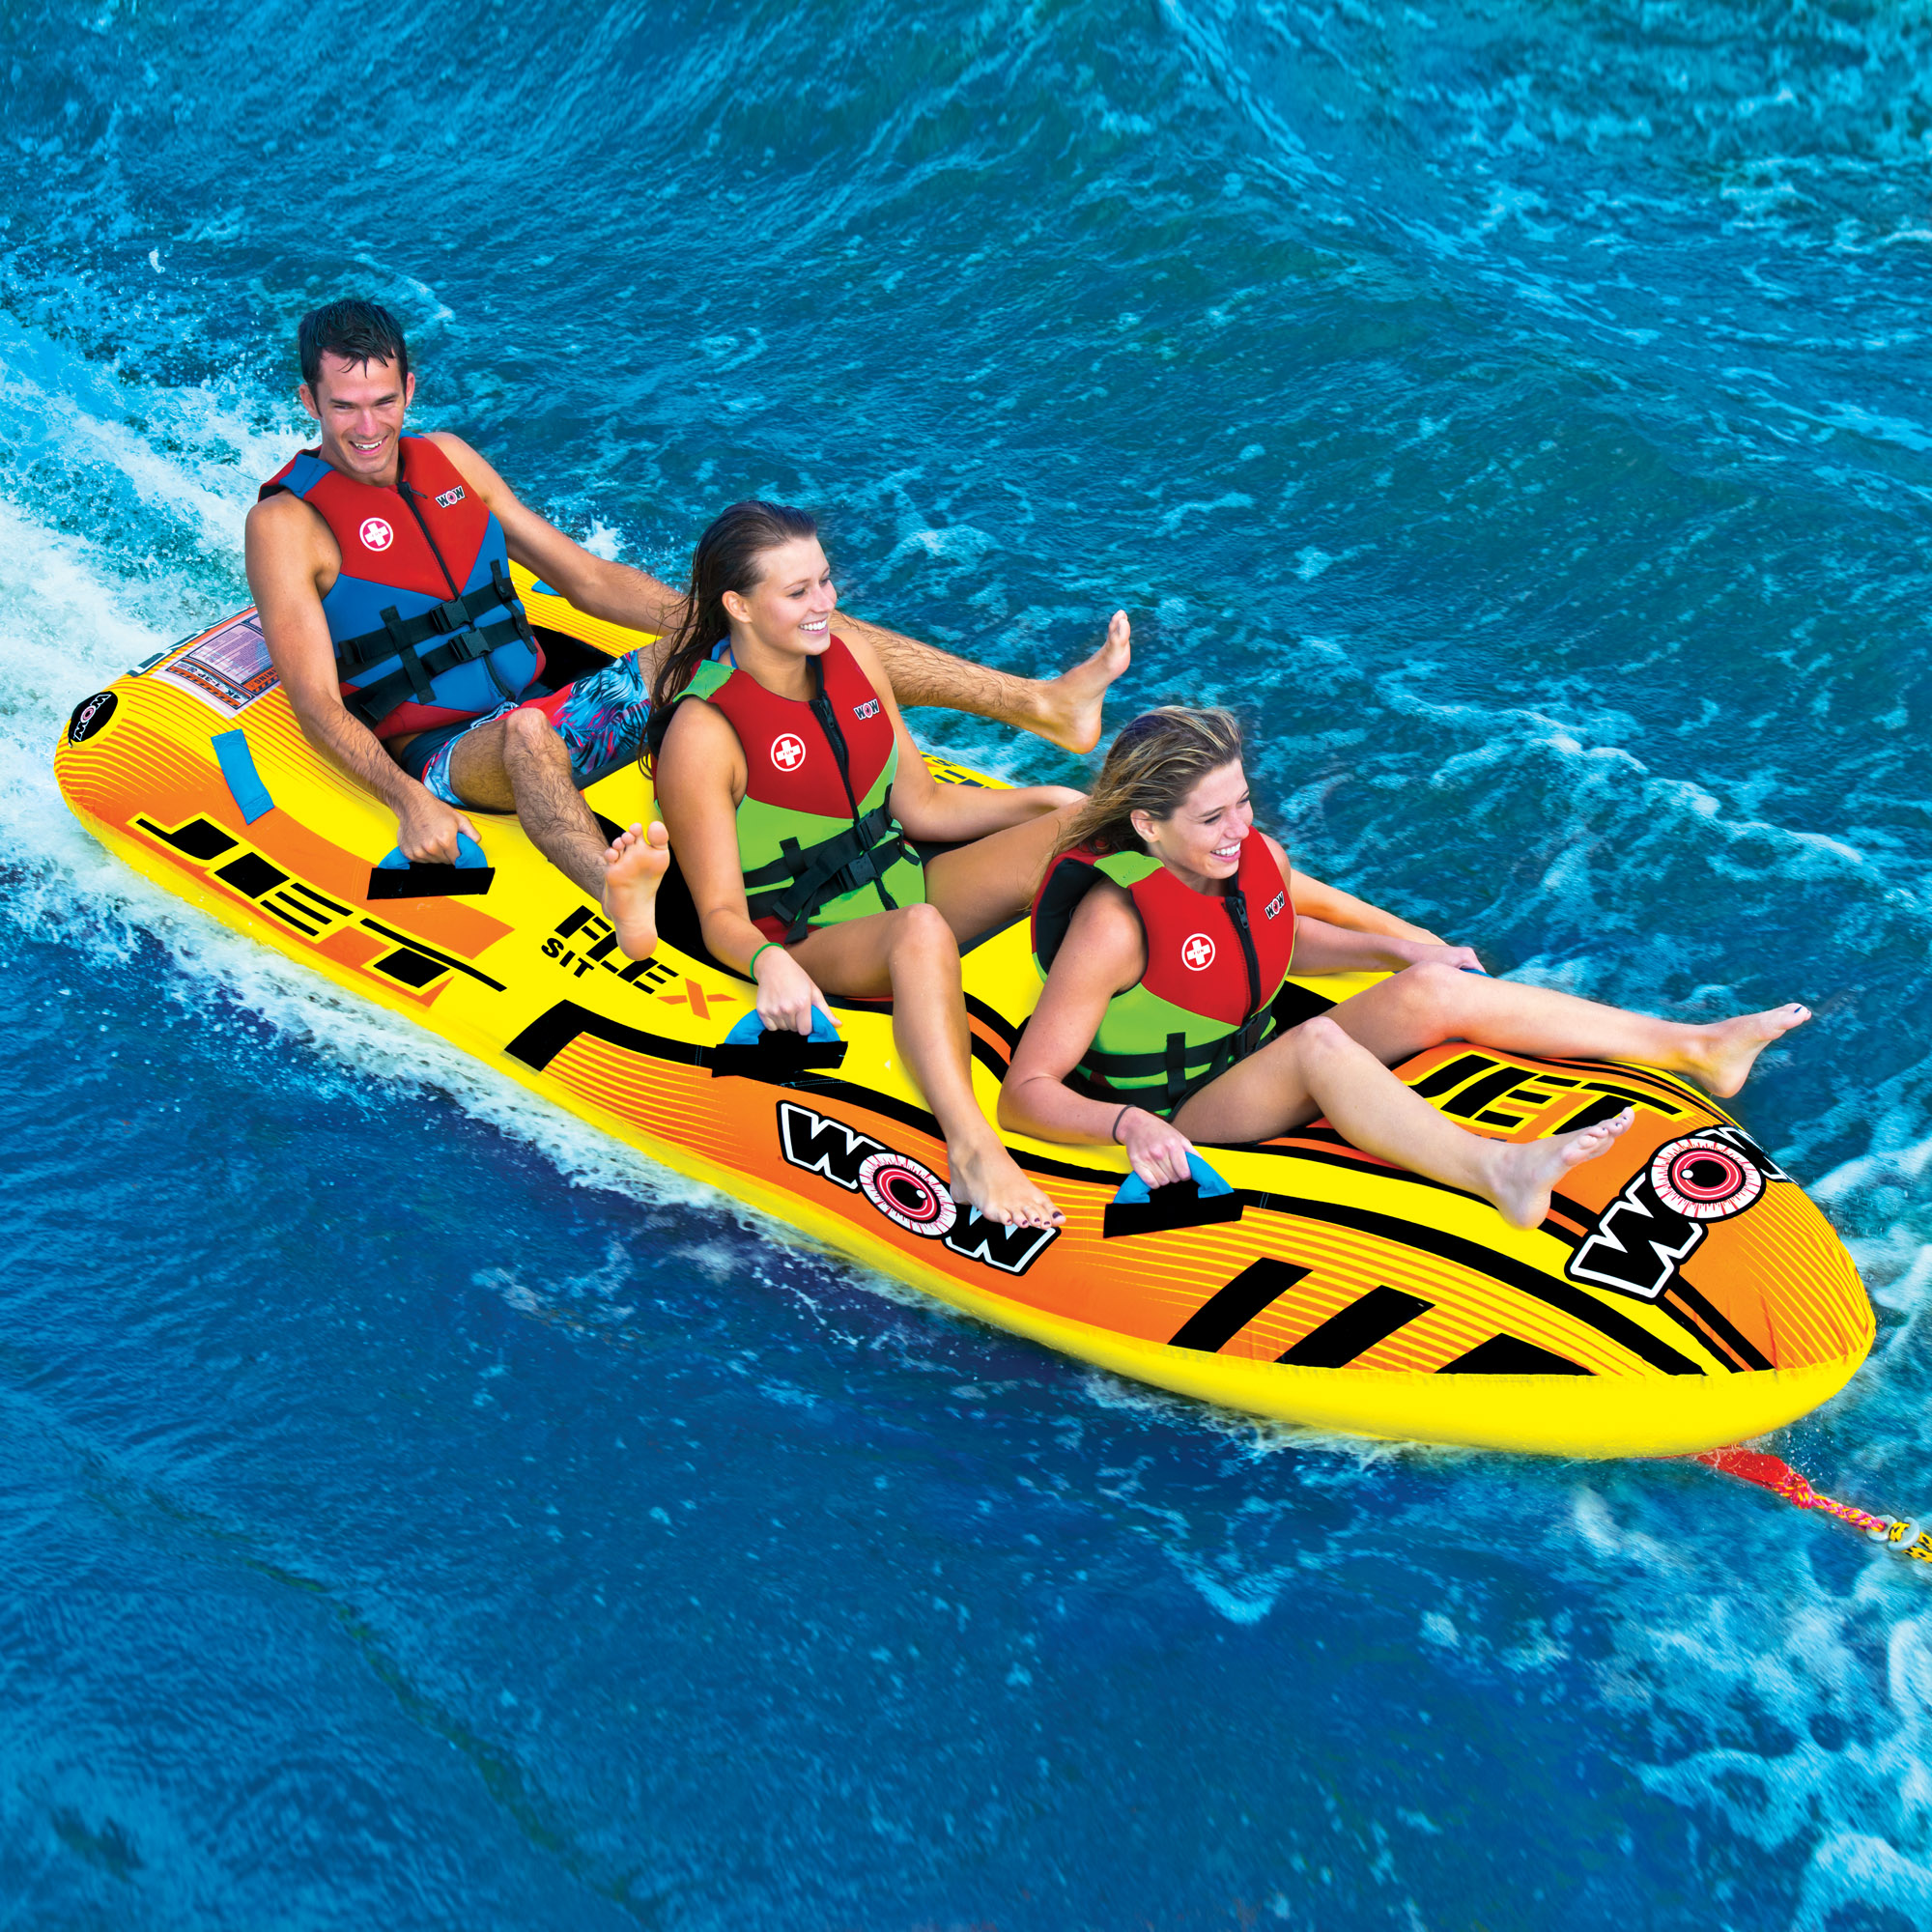 Jet Boat 3 Person Wow World Of Watersports Tow Harness For Towables Home Shop Towable Tubes